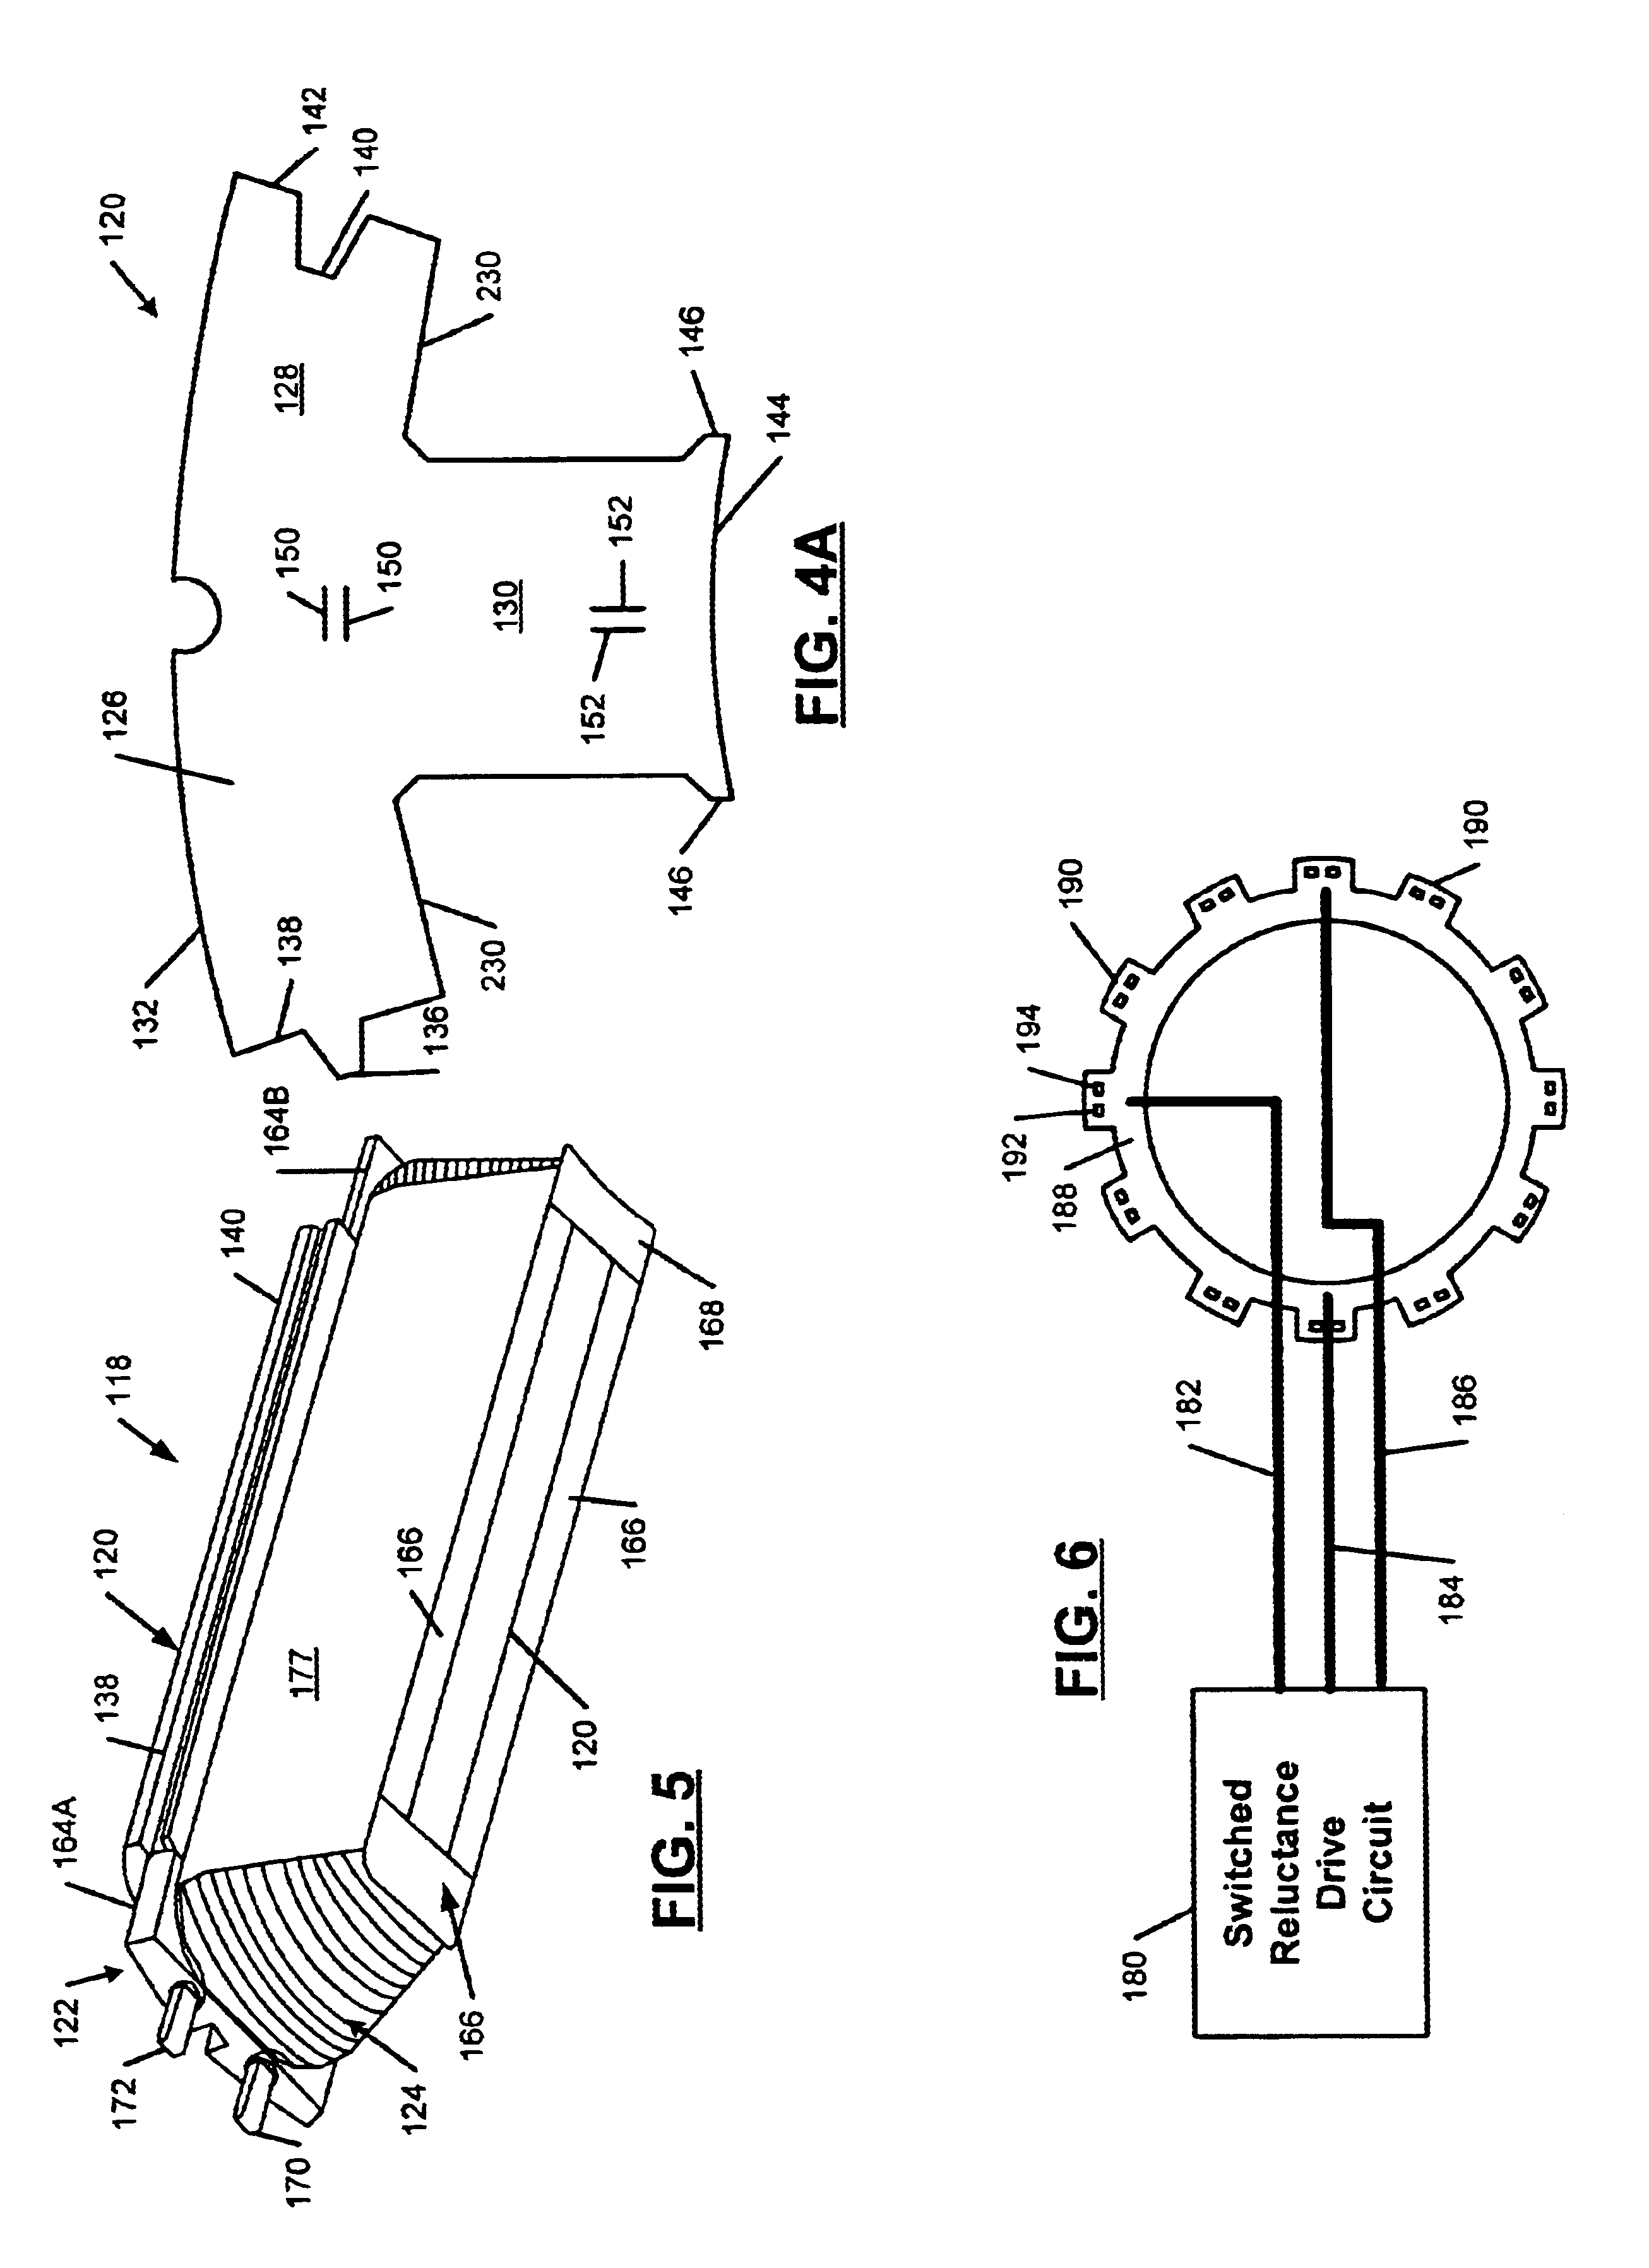 Patent Us6700284 Fan Assembly Including A Segmented Stator Voltage Control Of An Induction Motor Circuit Globe Drawing